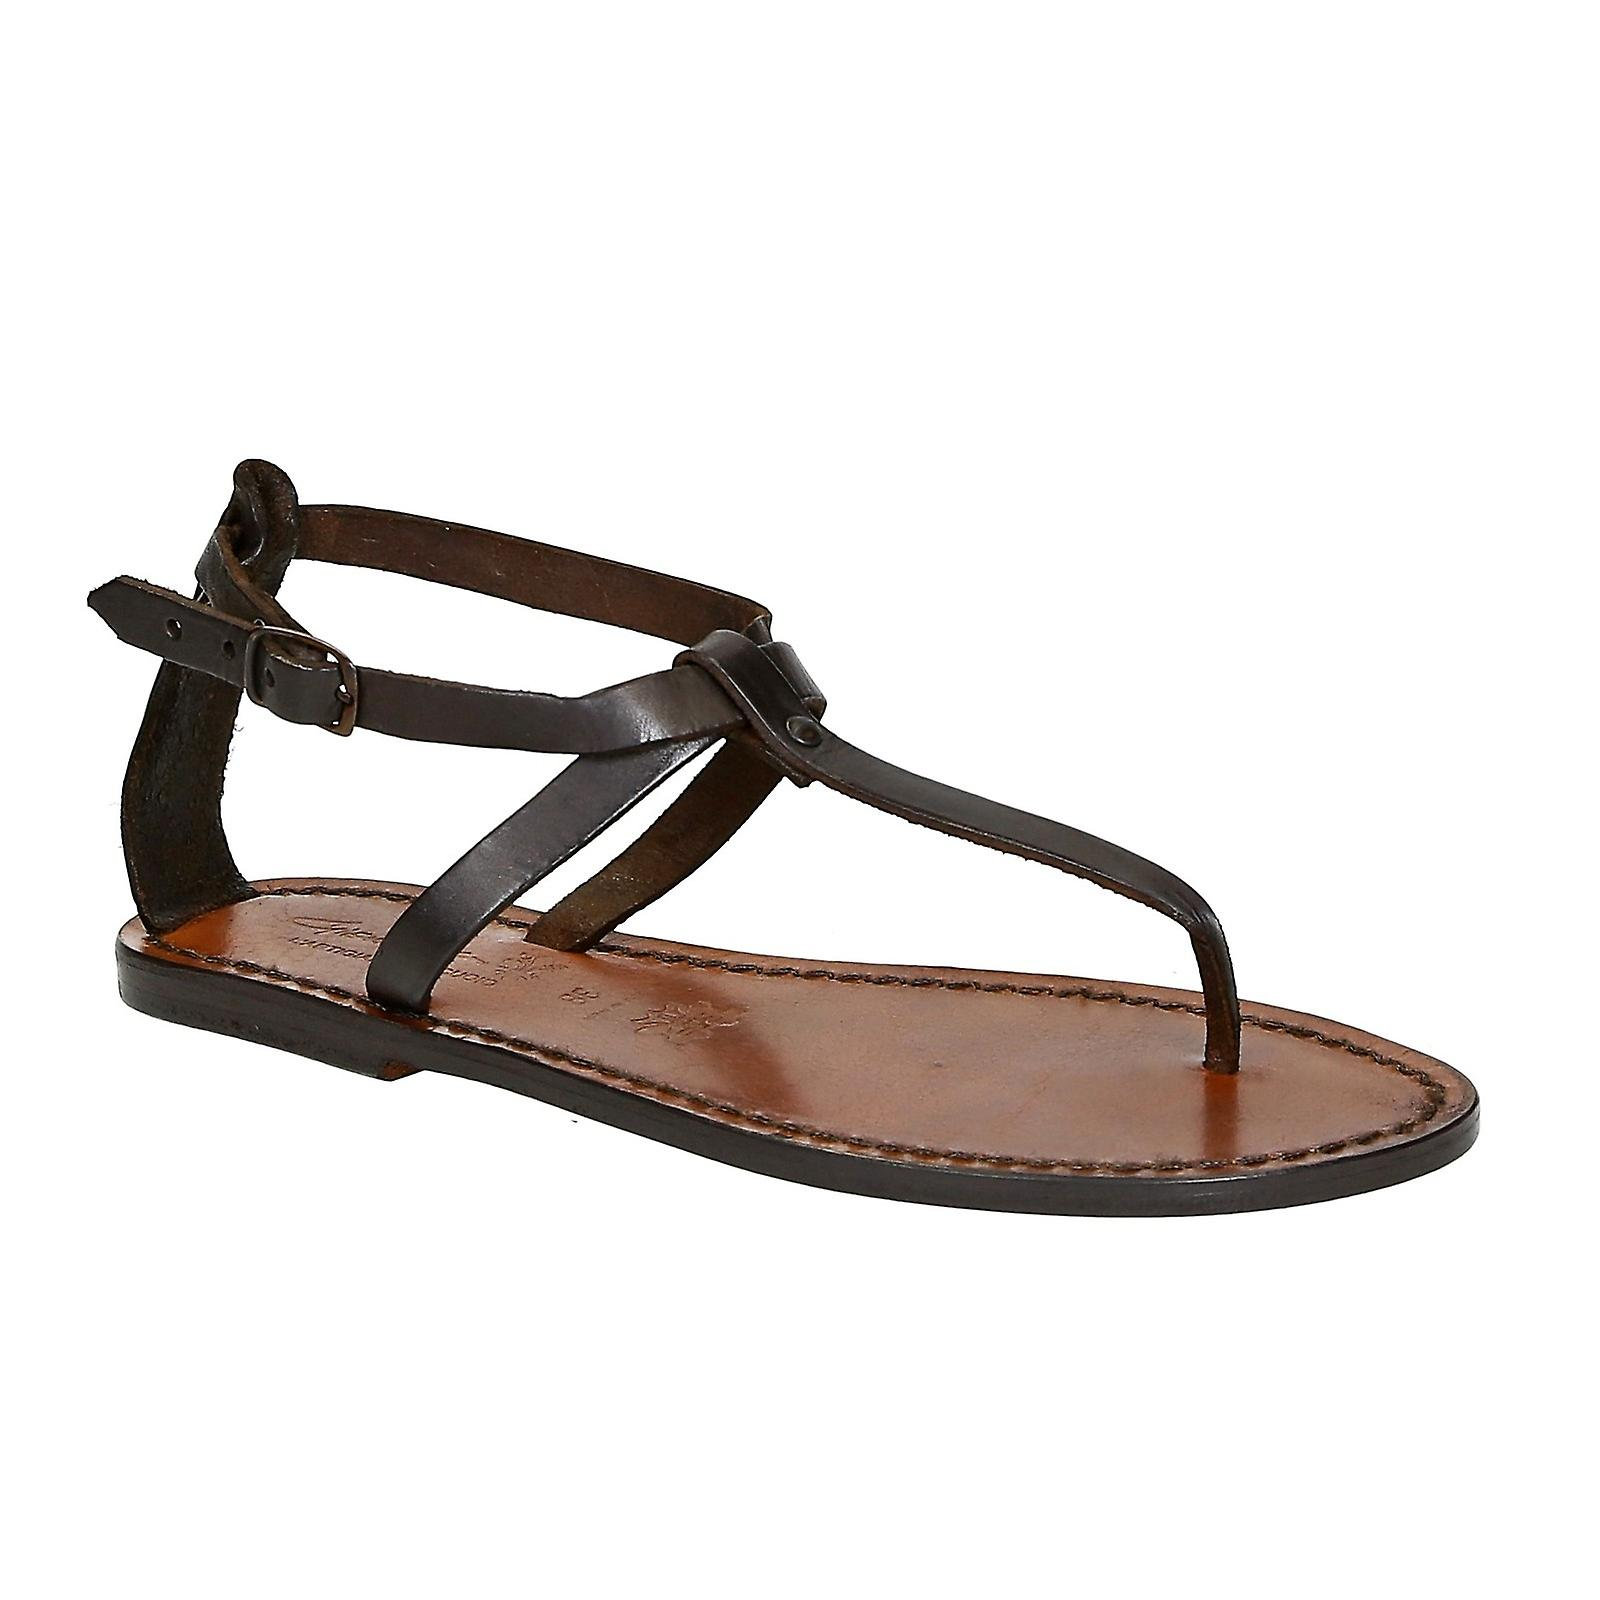 d36379d9373 Womens thong sandals in Dark Brown Leather handmade in Italy